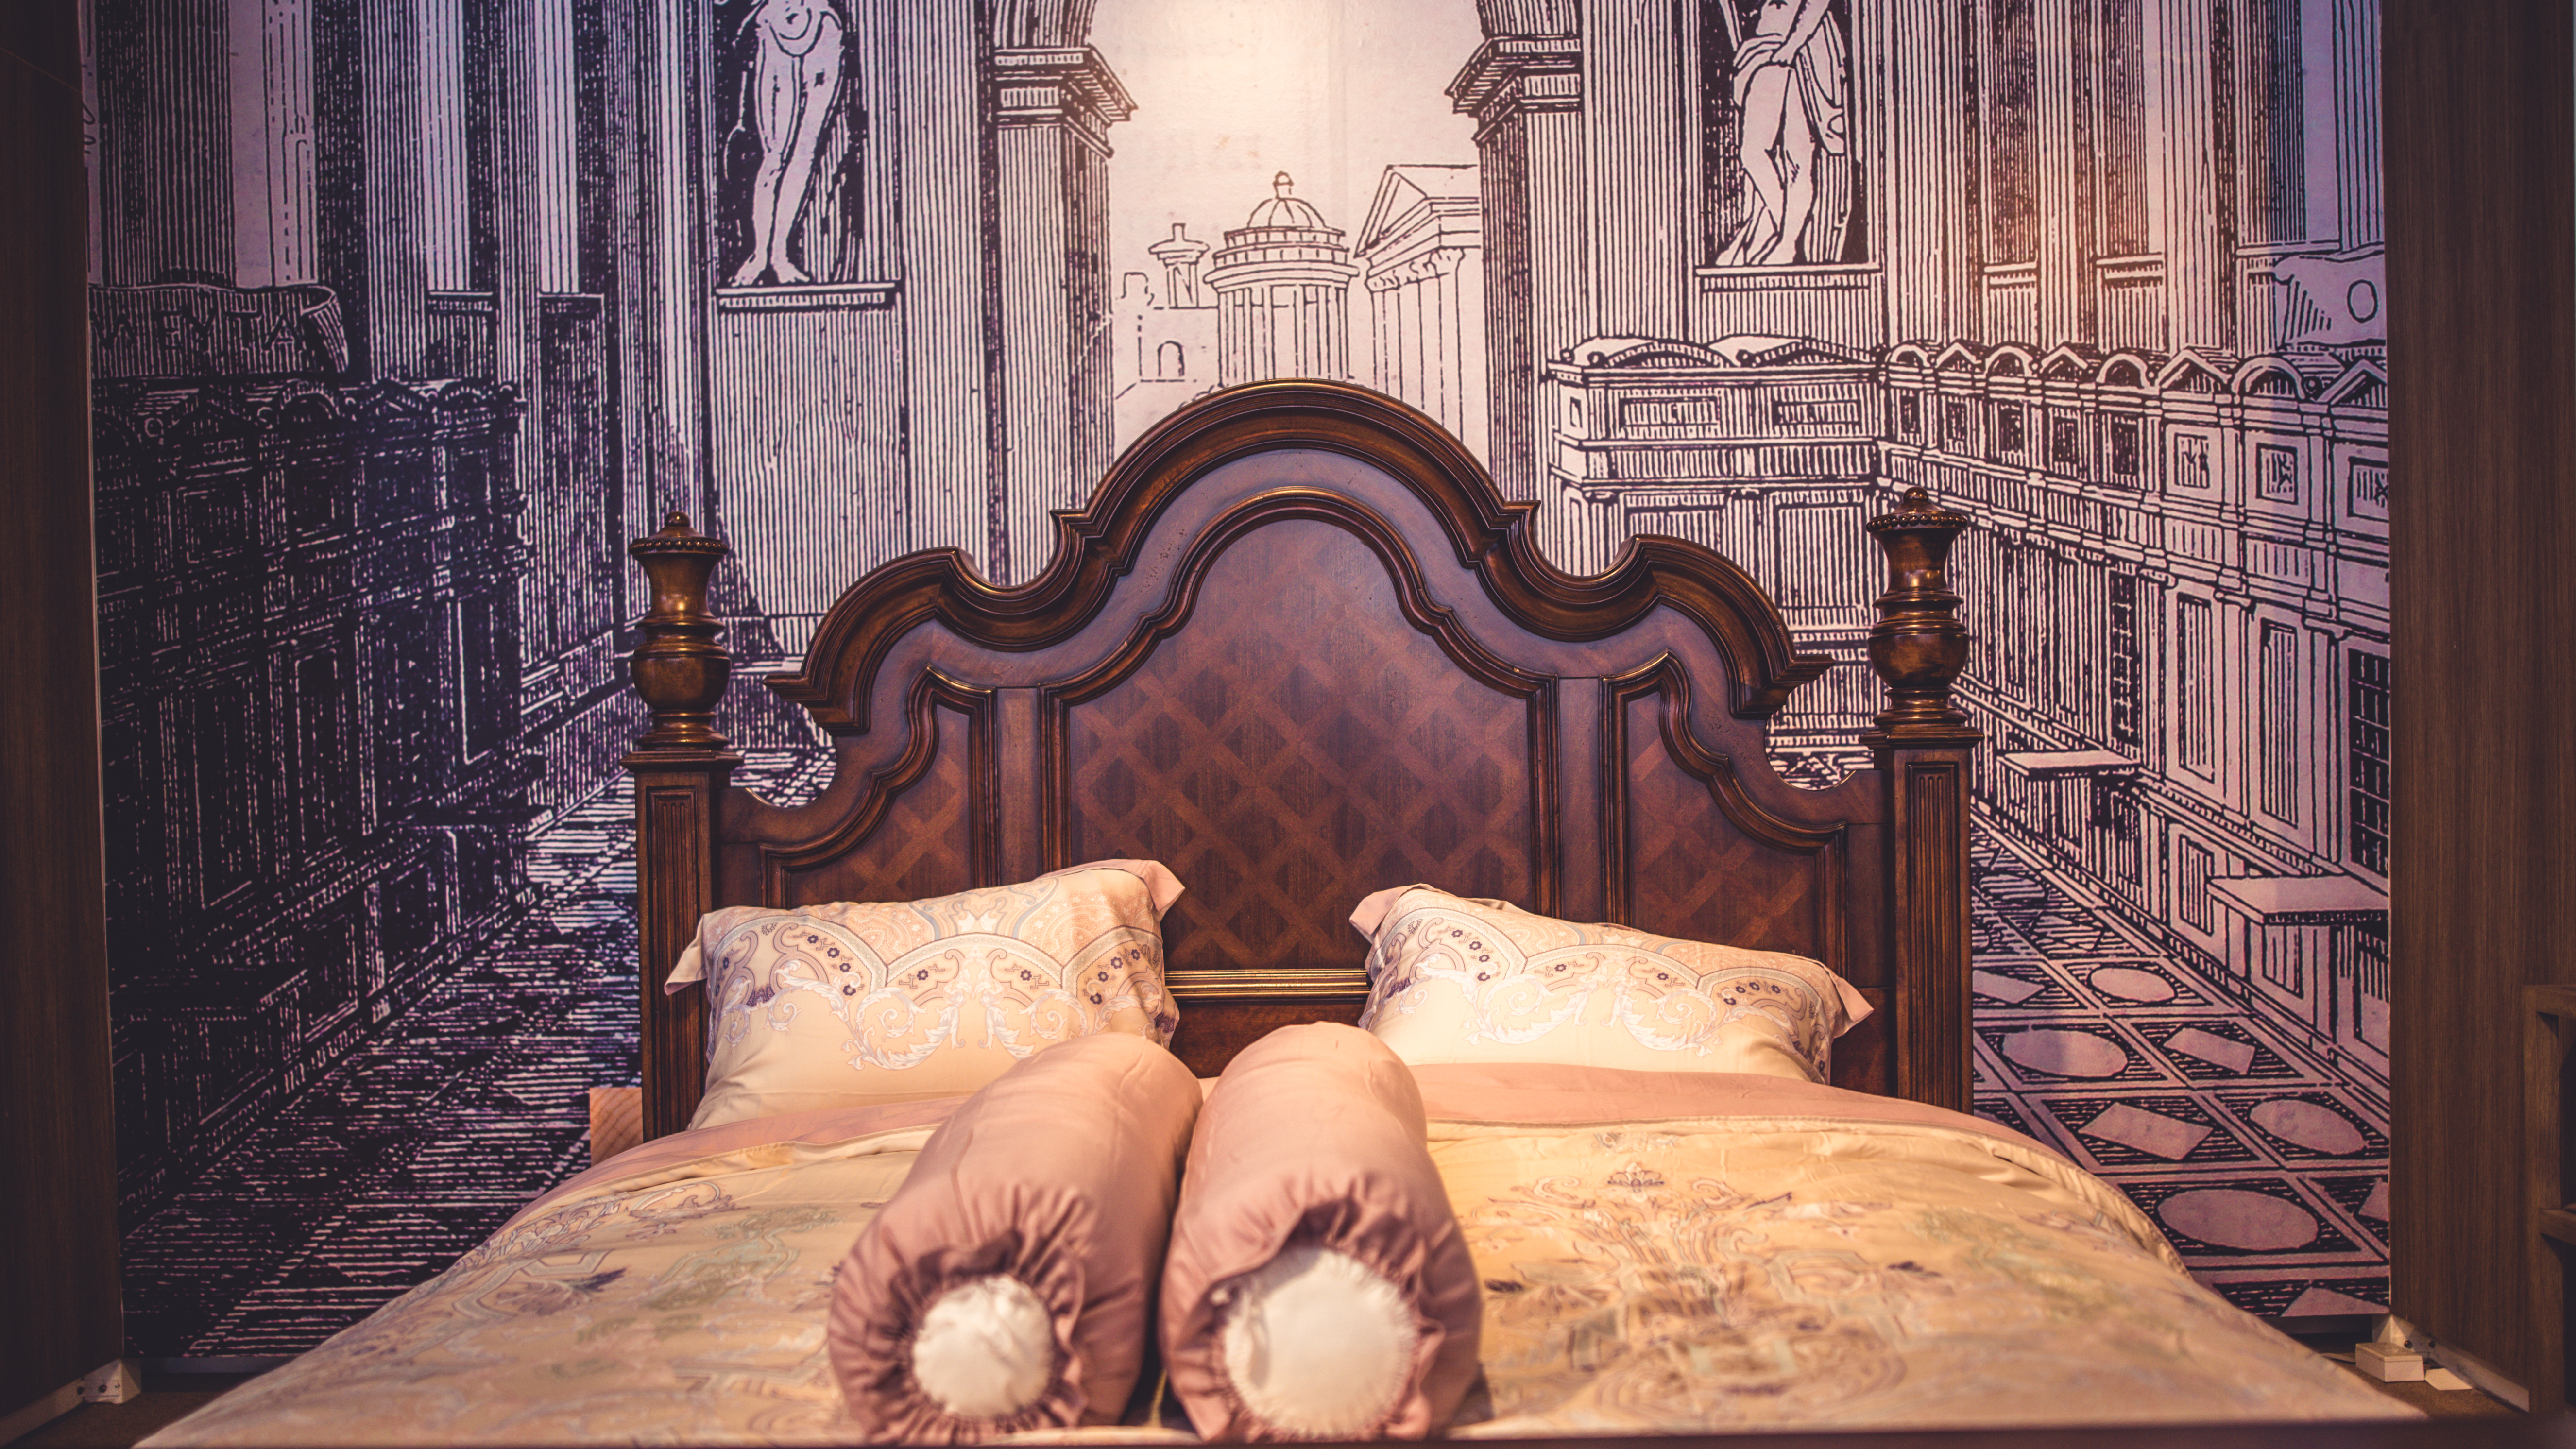 What Size Room Can Hold a Queen-Size Bed? | Home Guides | SF ...